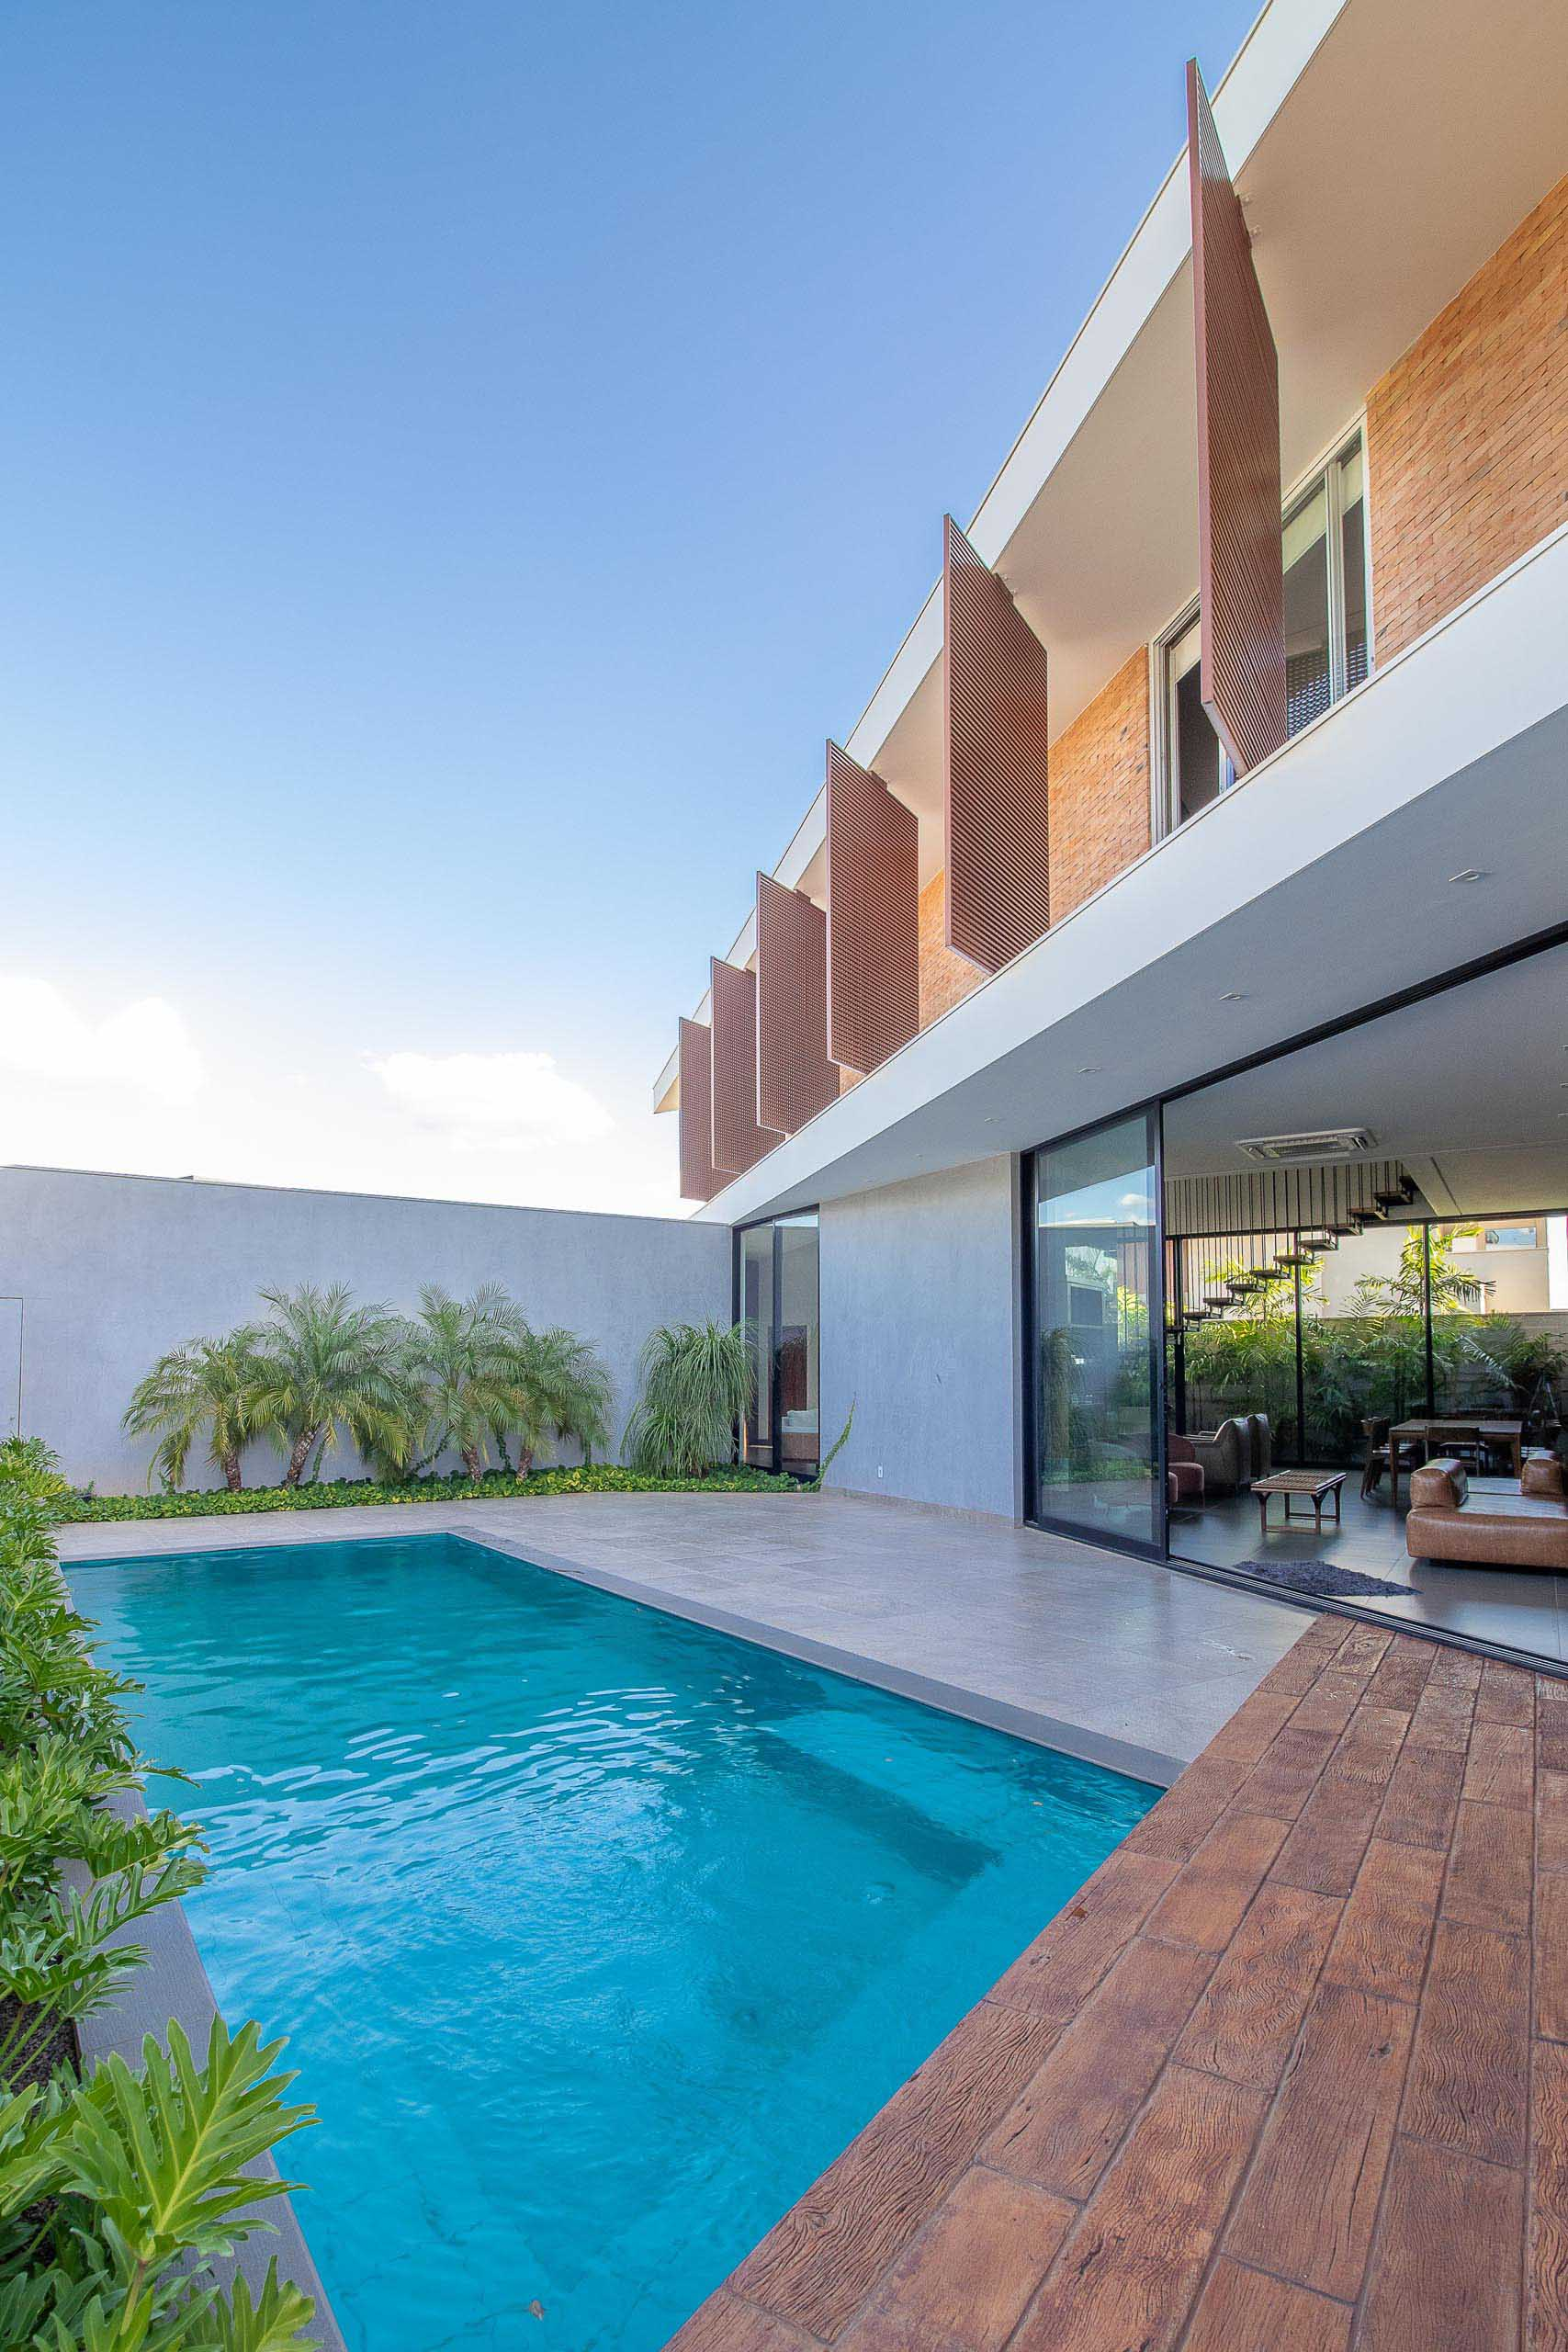 A modern house with a swimming pool and patio.